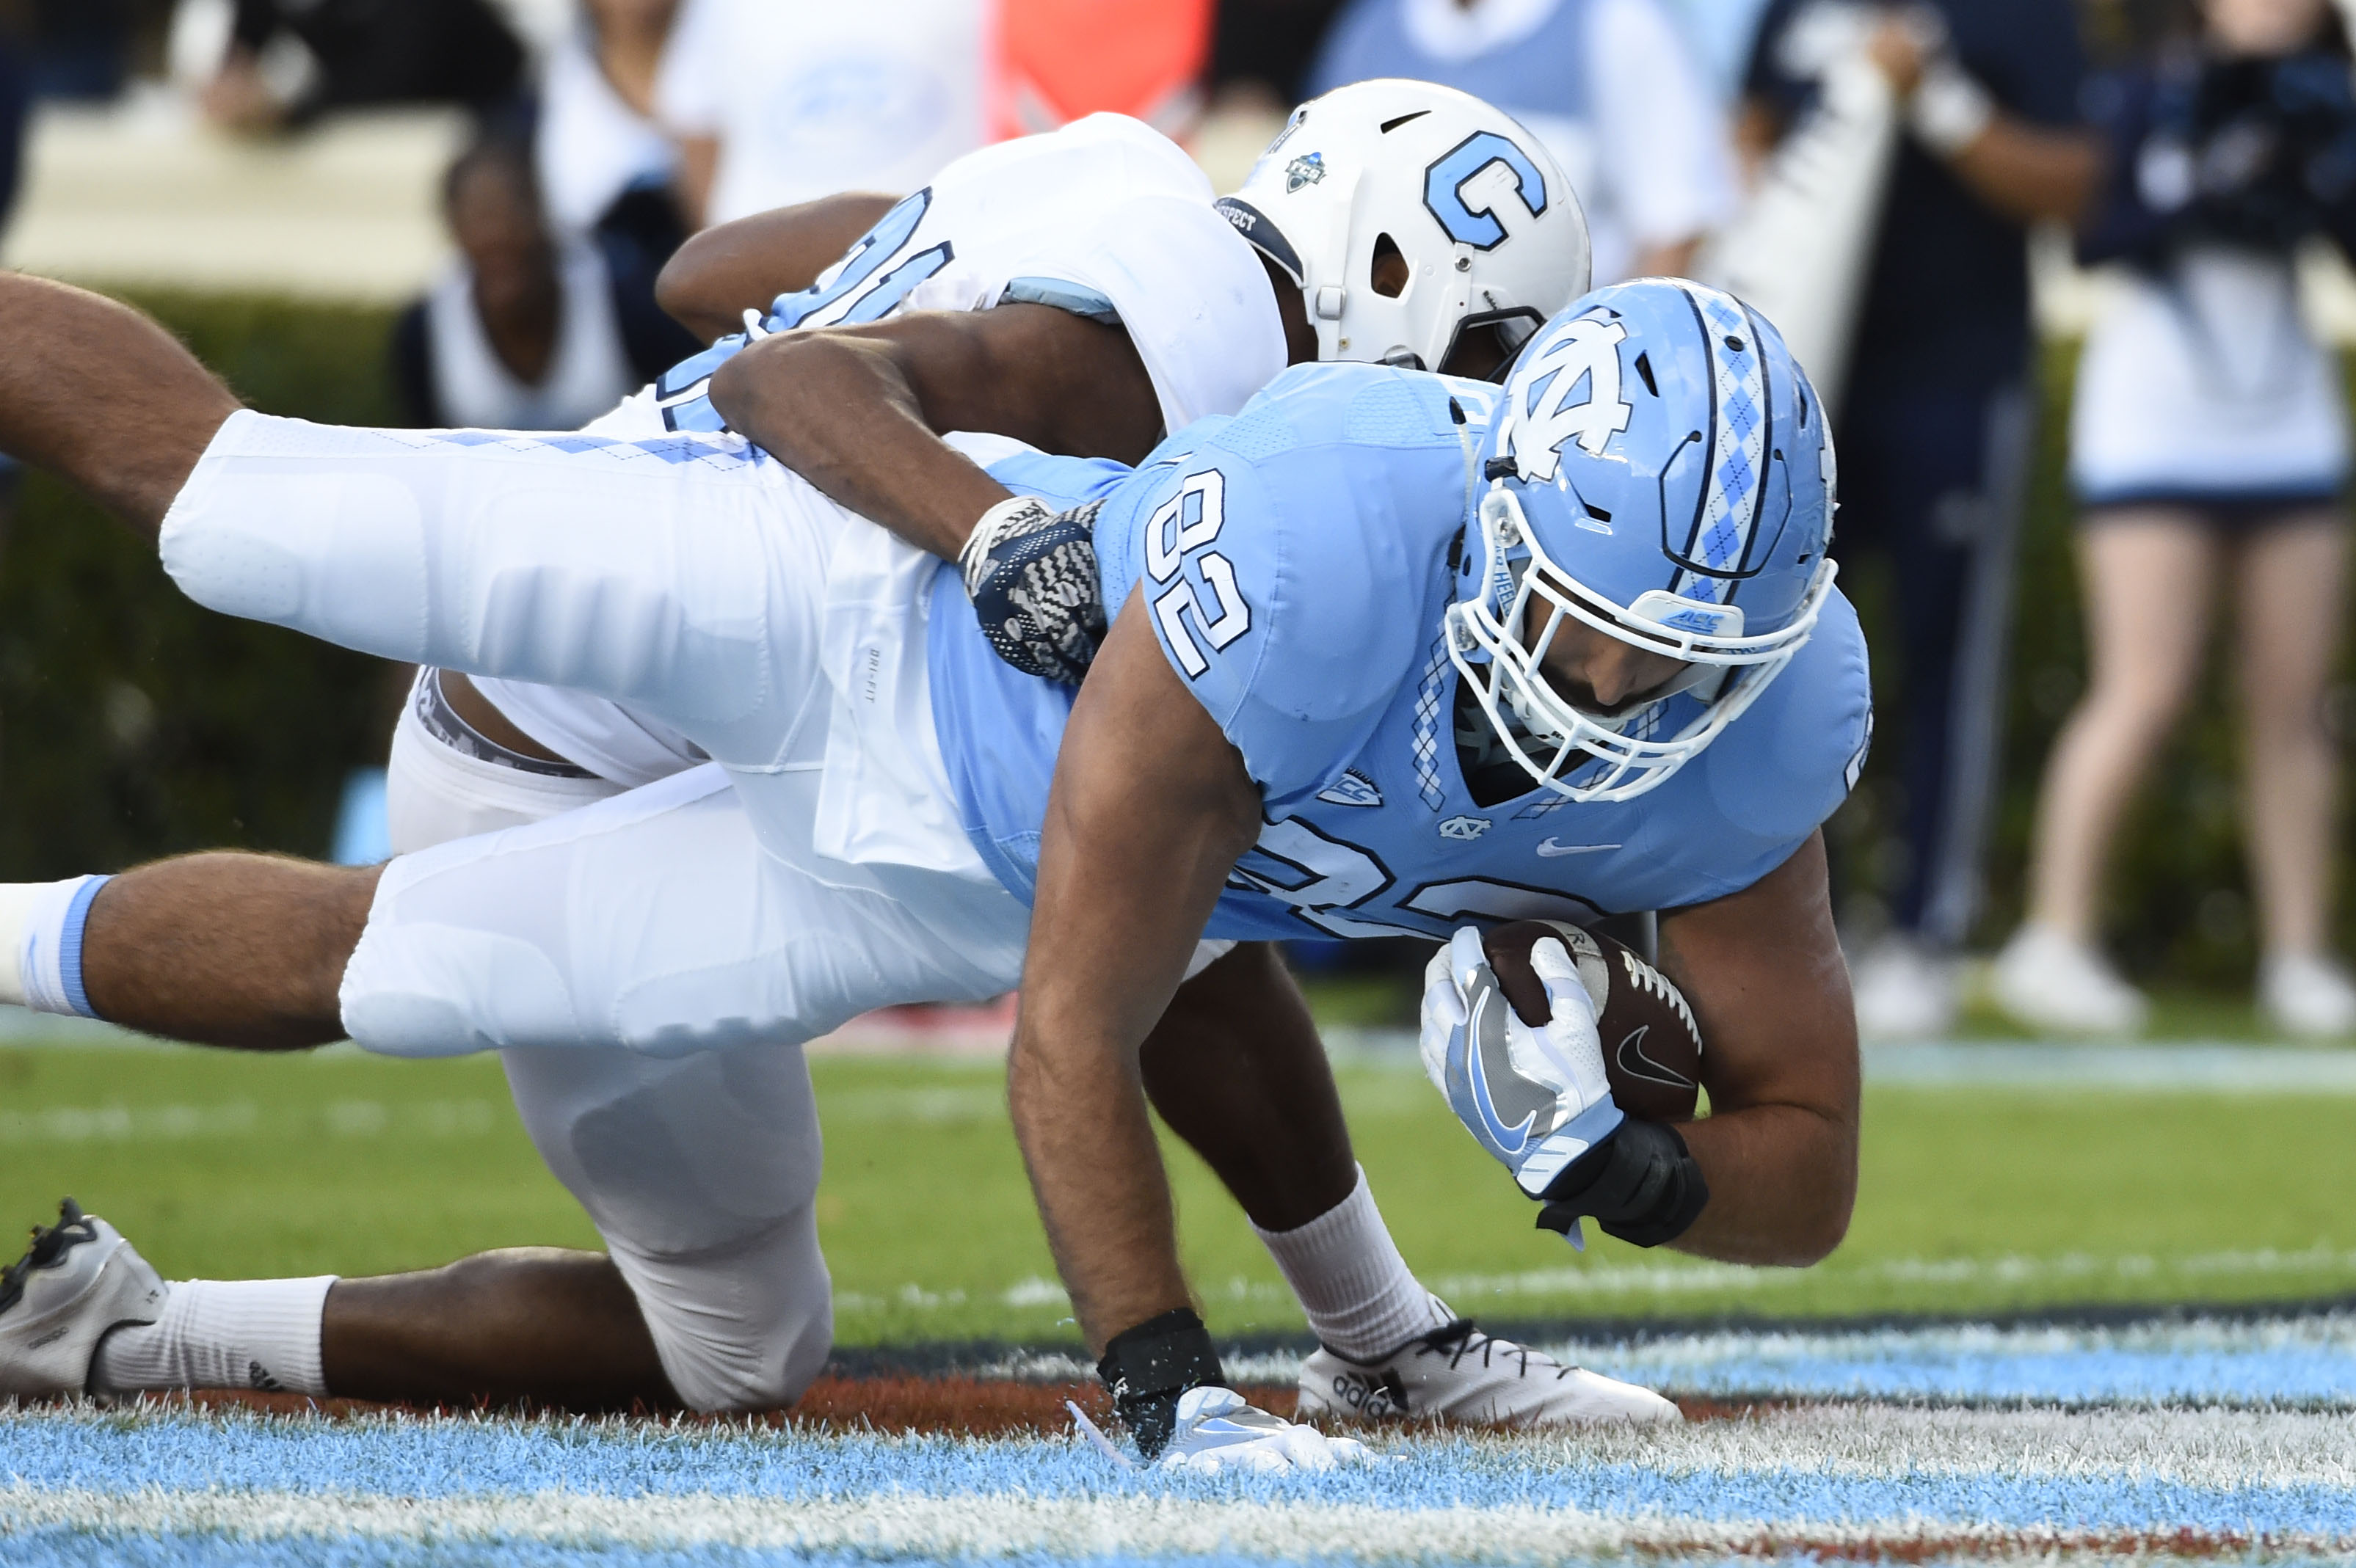 Top UNC Football players for 2017: No. 21 Brandon Fritts